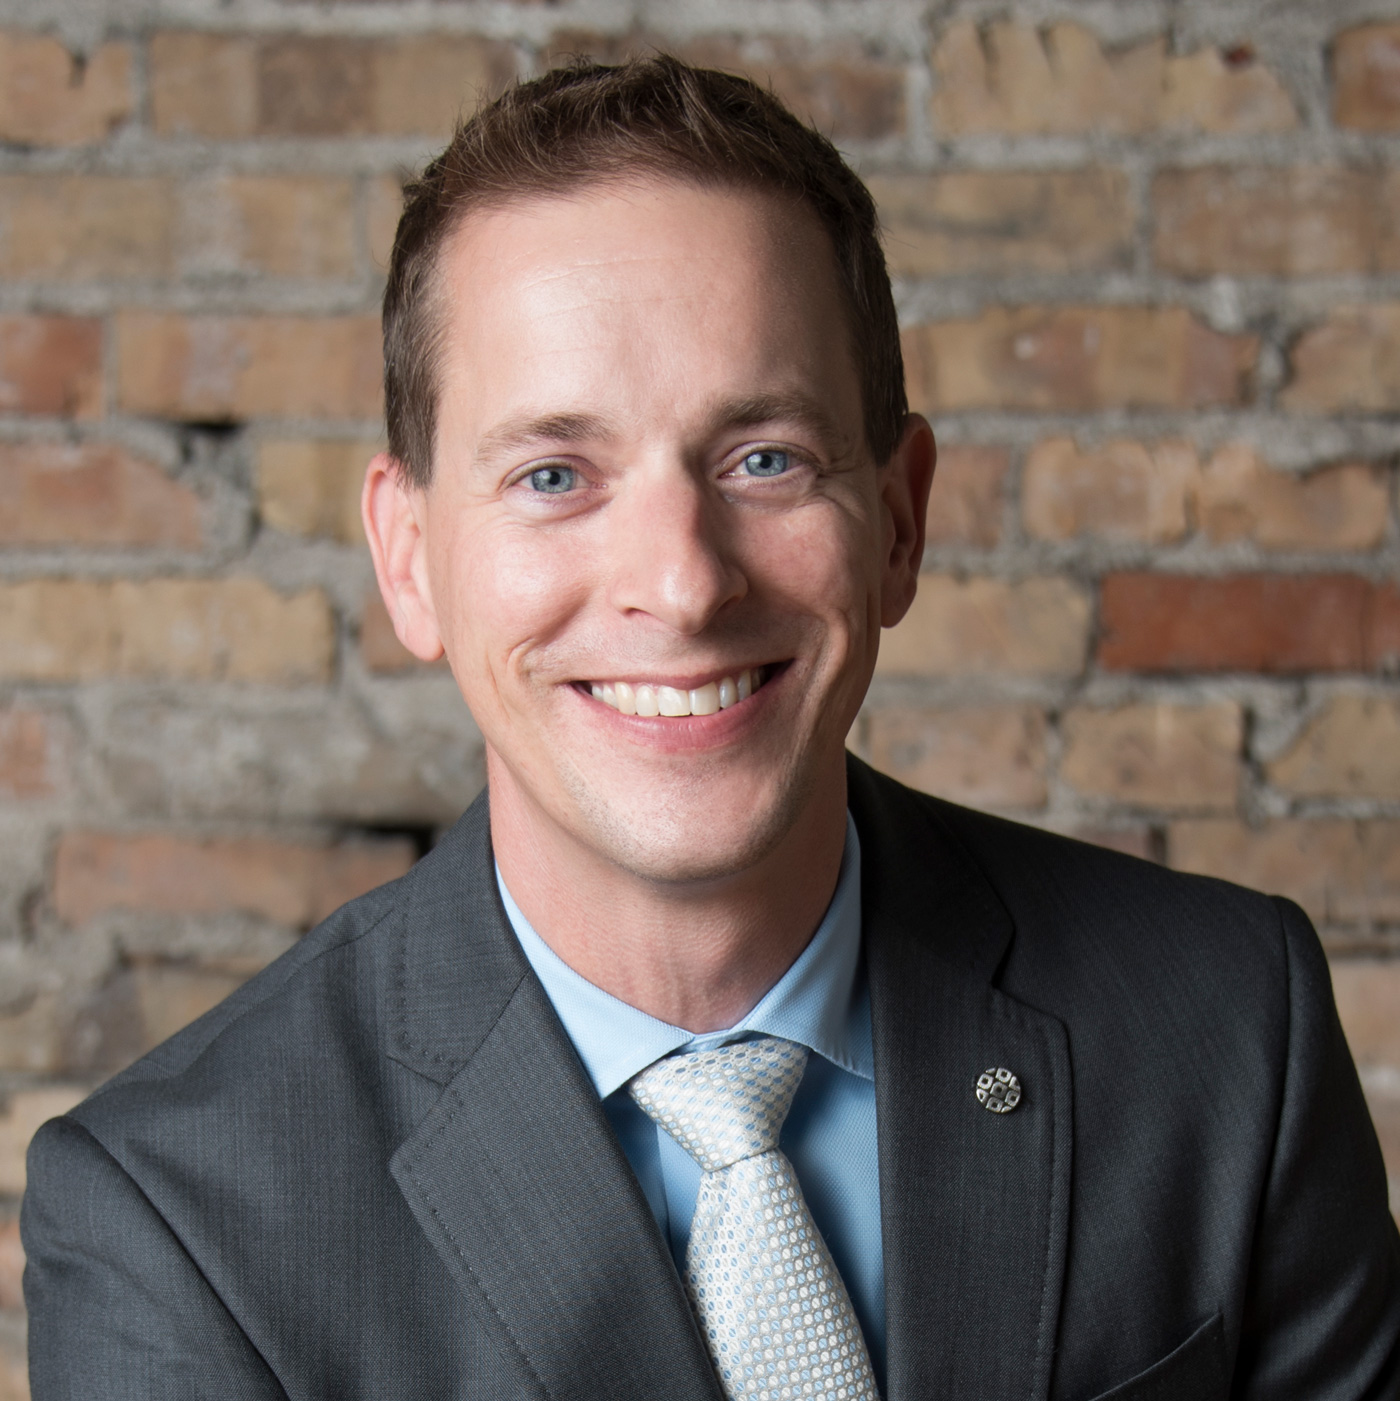 Lake Geneva Lawyer Headshot Portrait